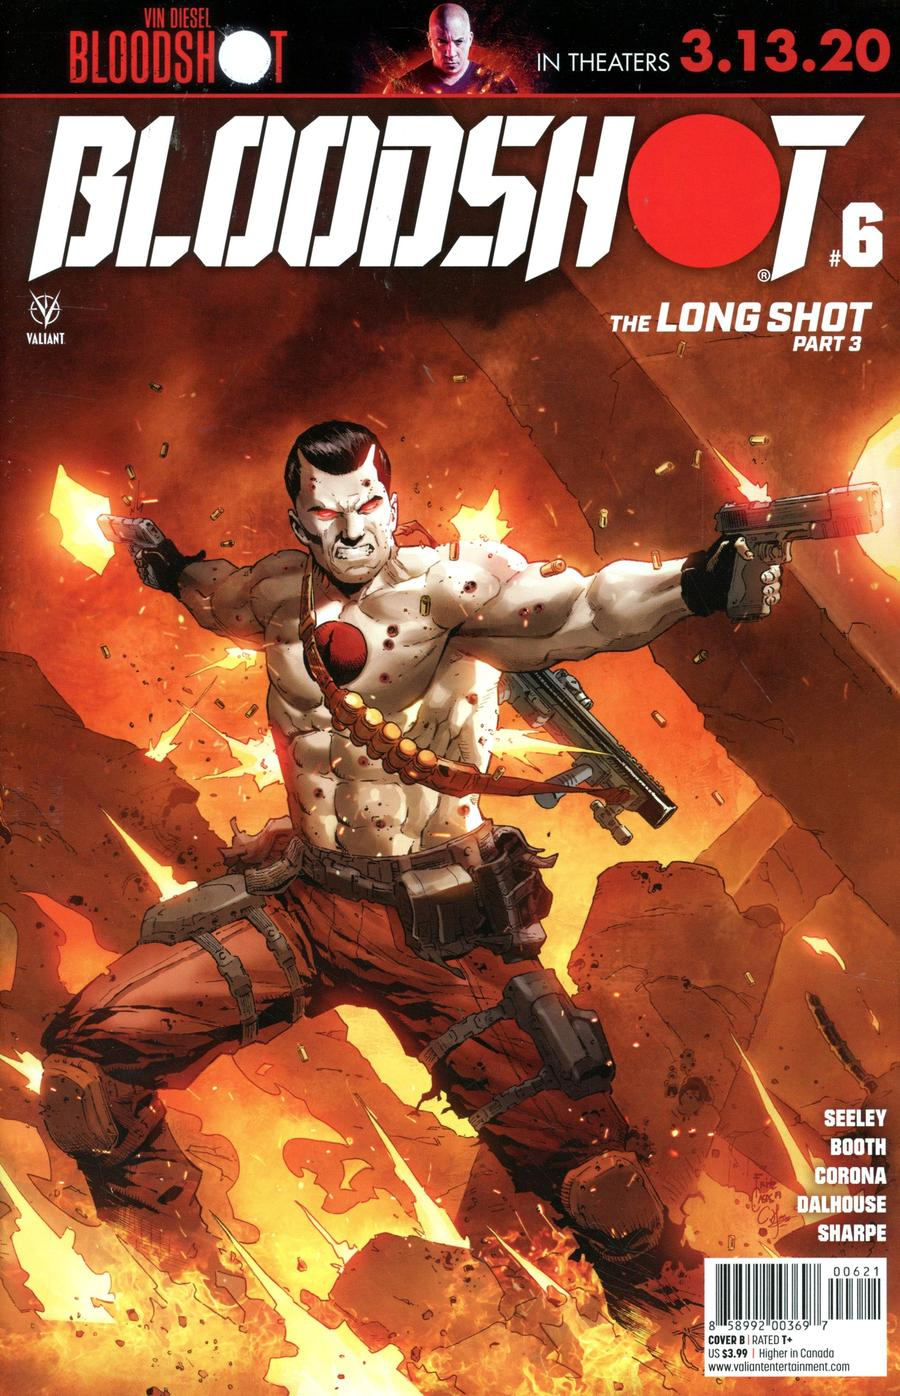 Bloodshot Vol 4 #6 Cover B Variant Fritz Casas Cover